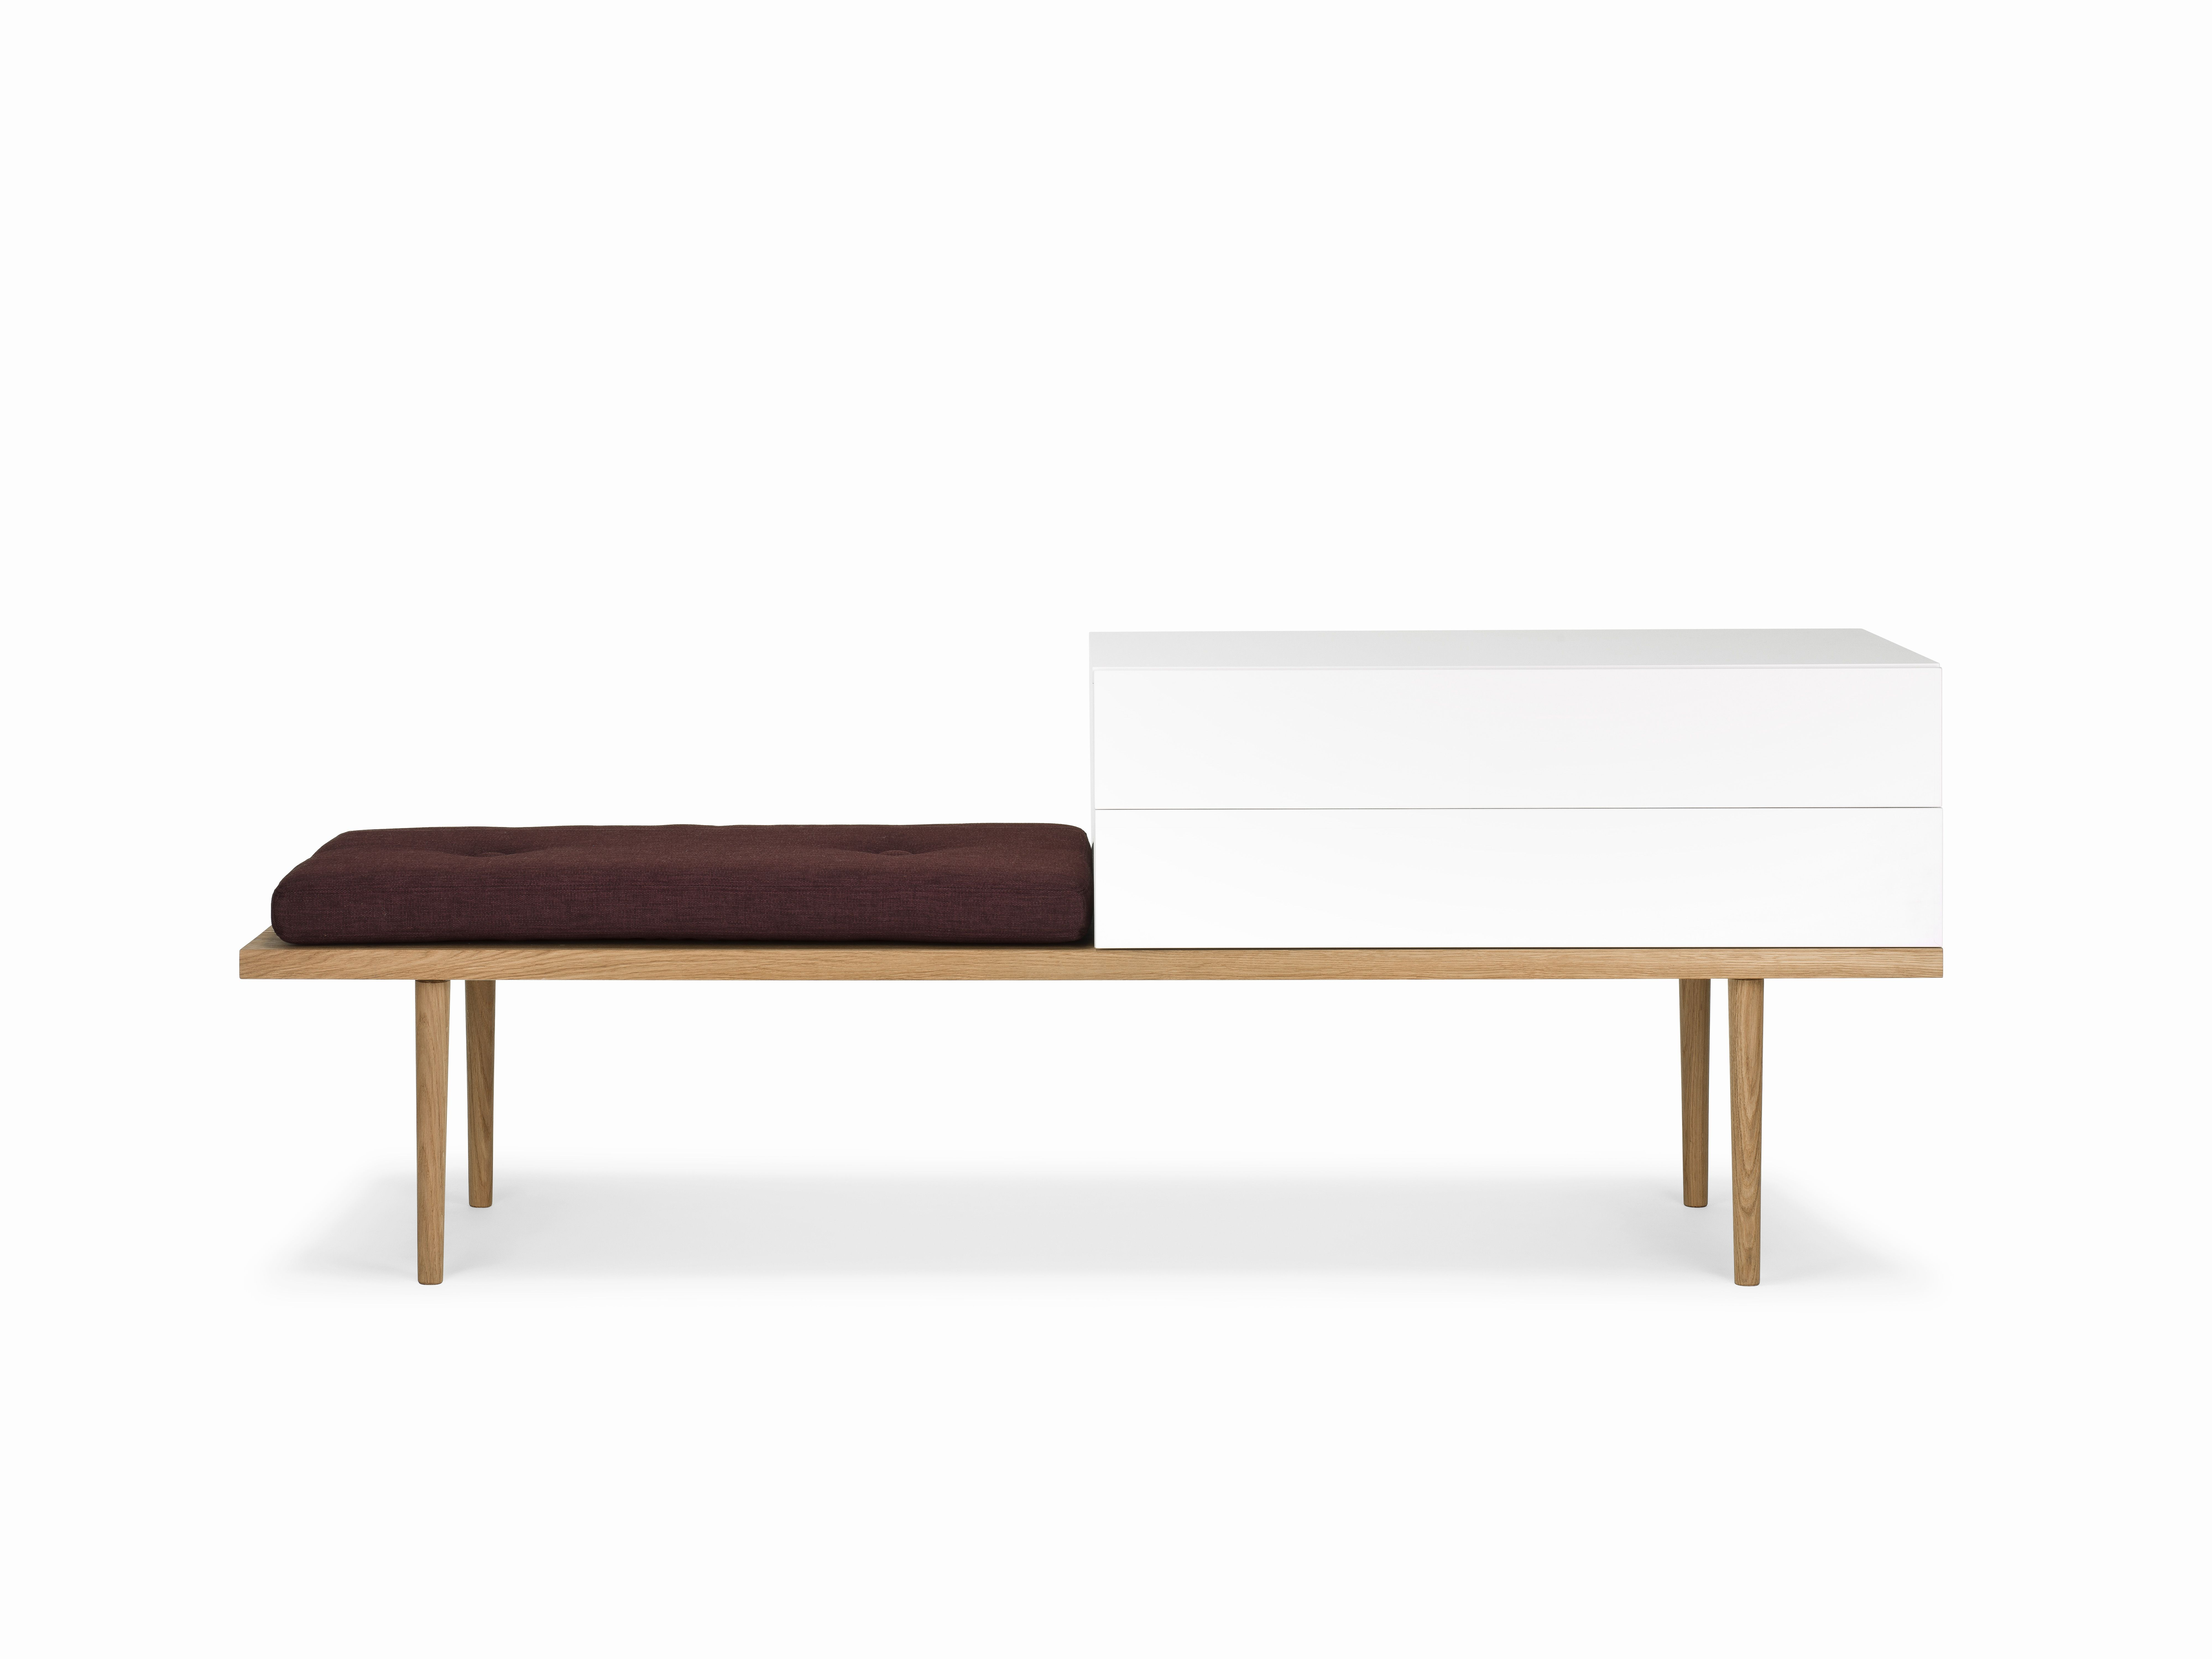 Berlin bench designed by sebastian hertel peter klarhoefer berlin bench designed by sebastian hertel peter klarhoefer parisarafo Choice Image